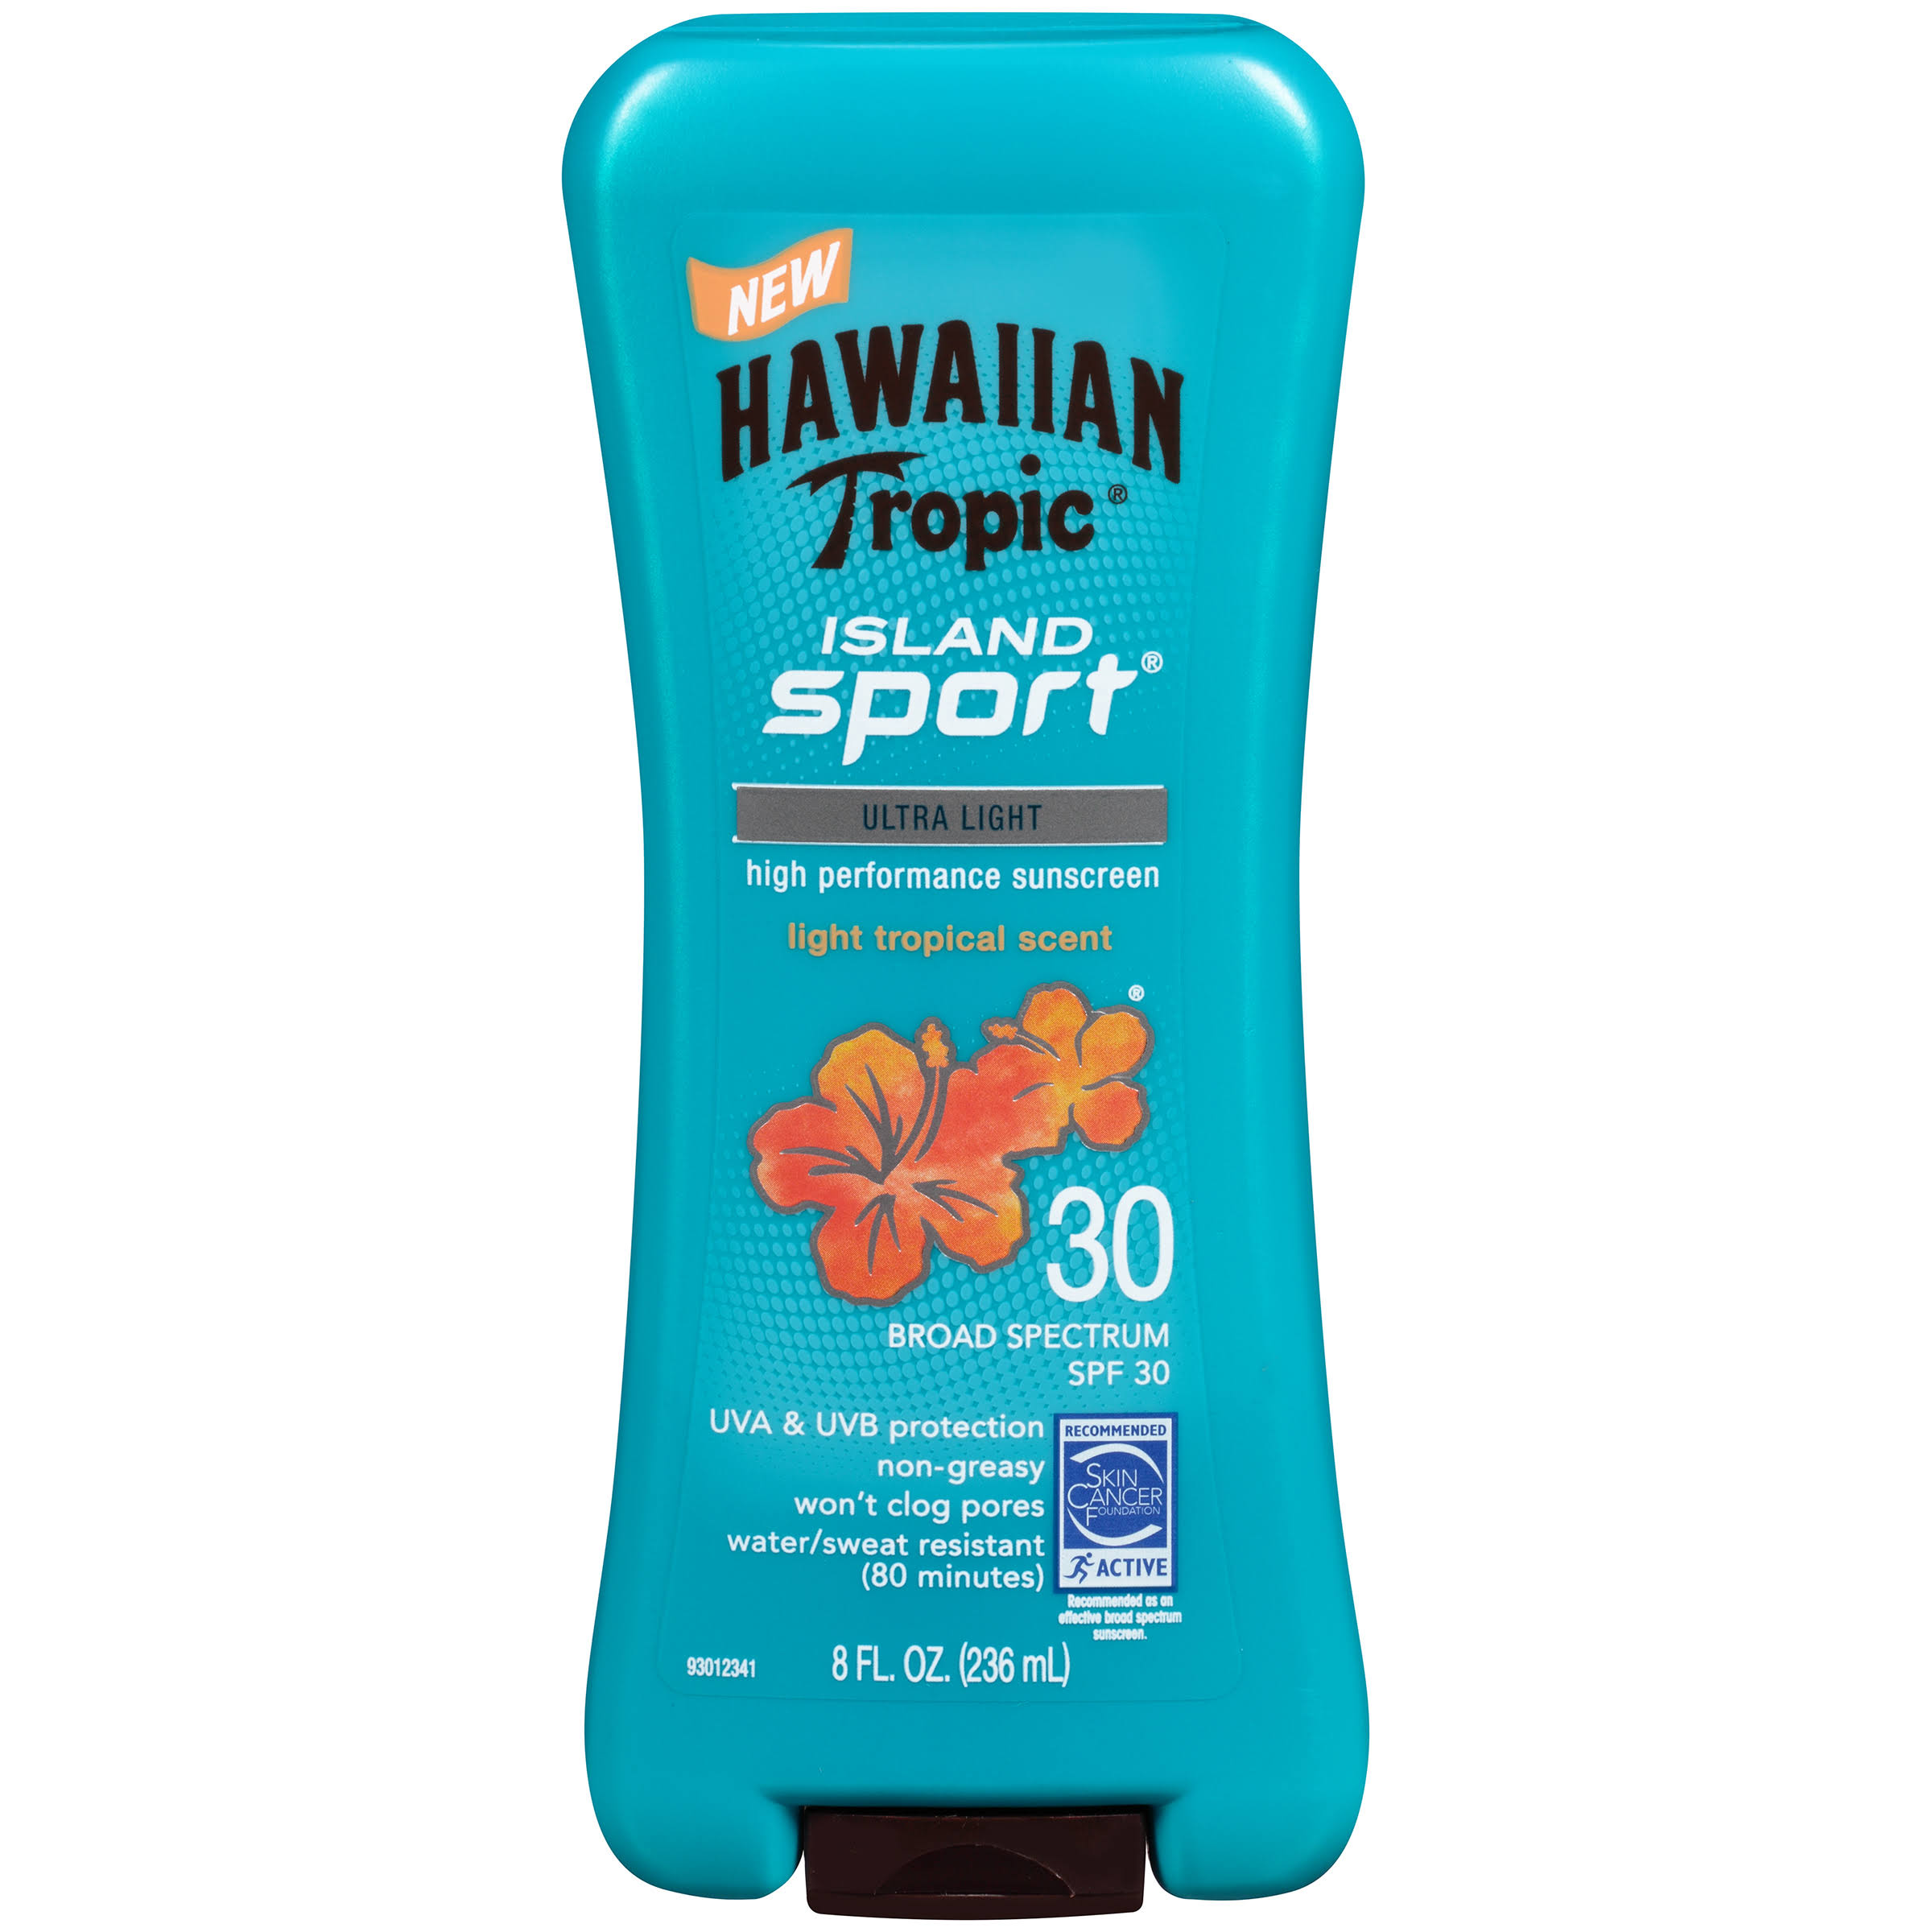 Hawaiian Tropic Island Sport Ultra Light Sunscreen - SPF 30, 8oz